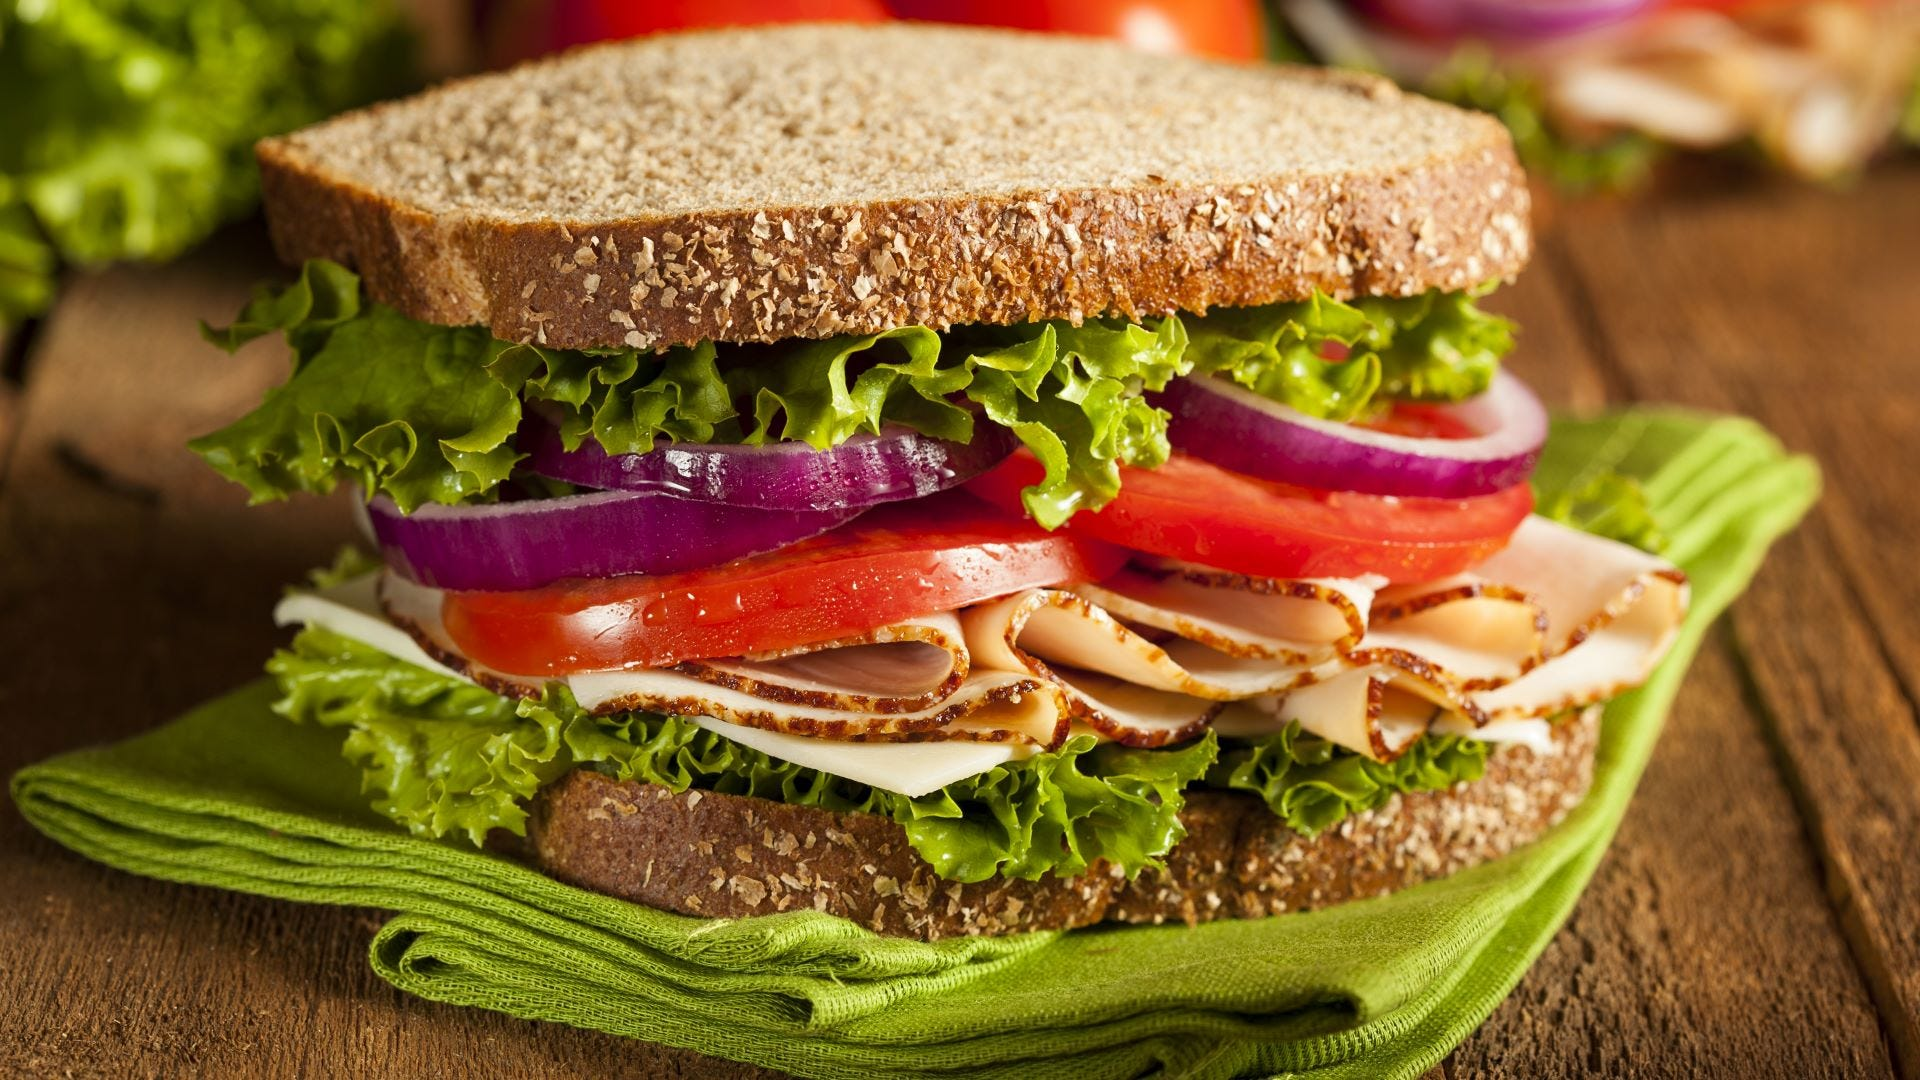 A turkey sandwich on wheat bread with tomato, lettuce, and onion.